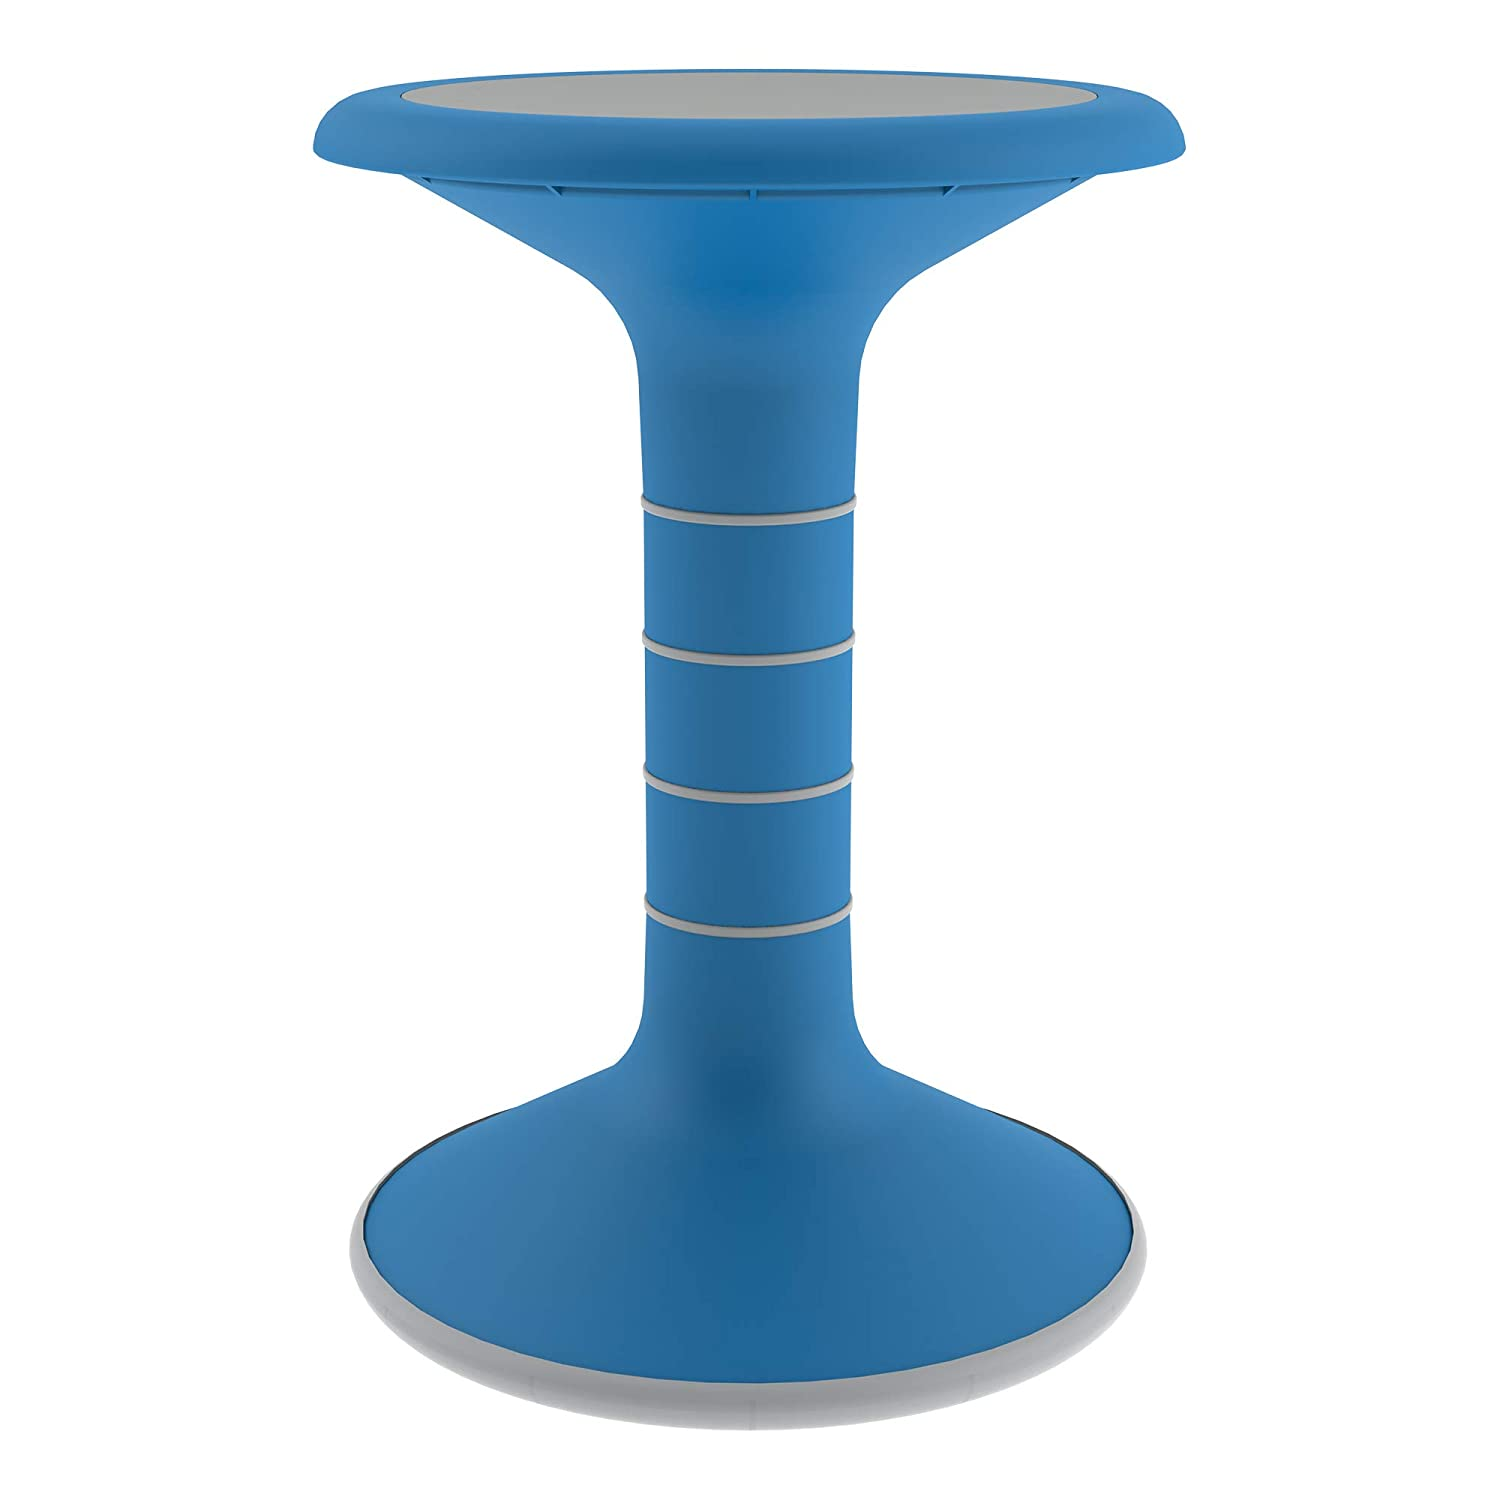 Learniture Active Motion Stool Flexible Seating for School Classroom, Office or Home - 18